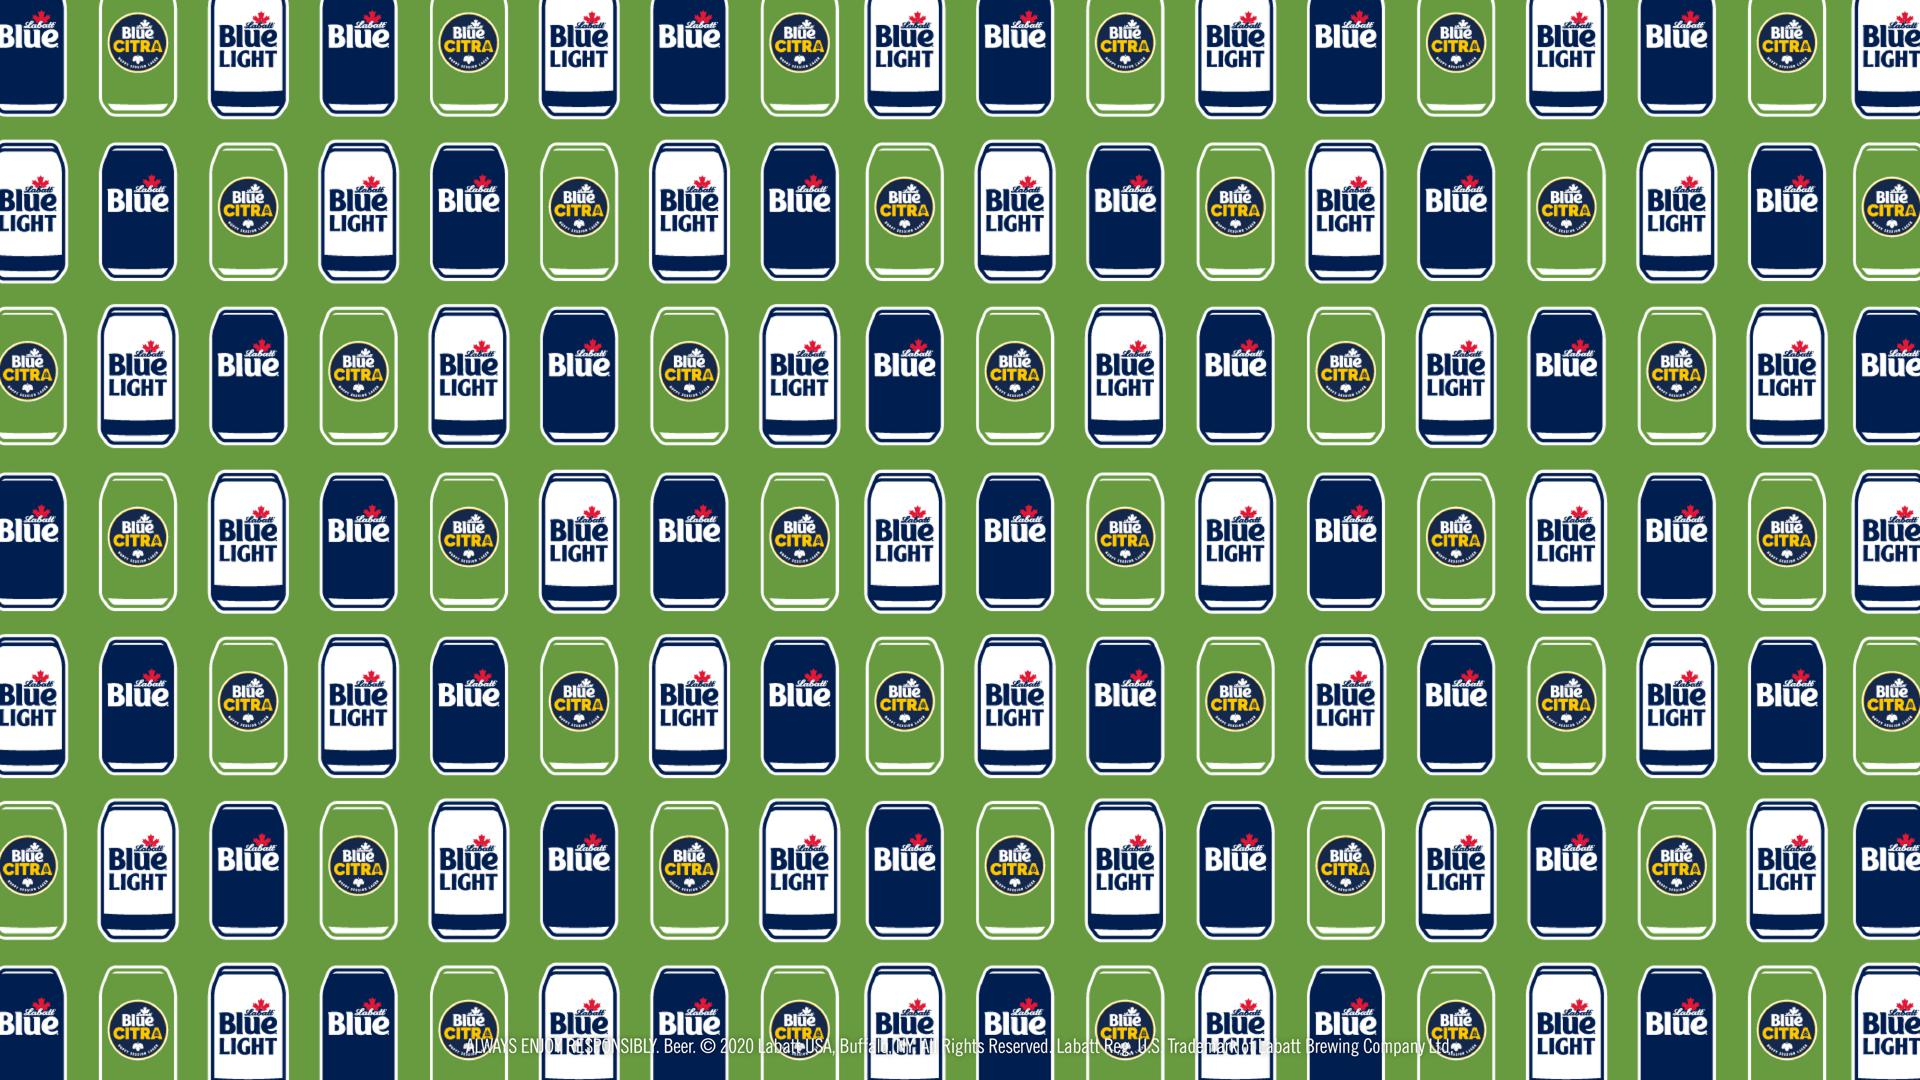 Blue, Blue Light, and Blue Citra Cans Pattern Background